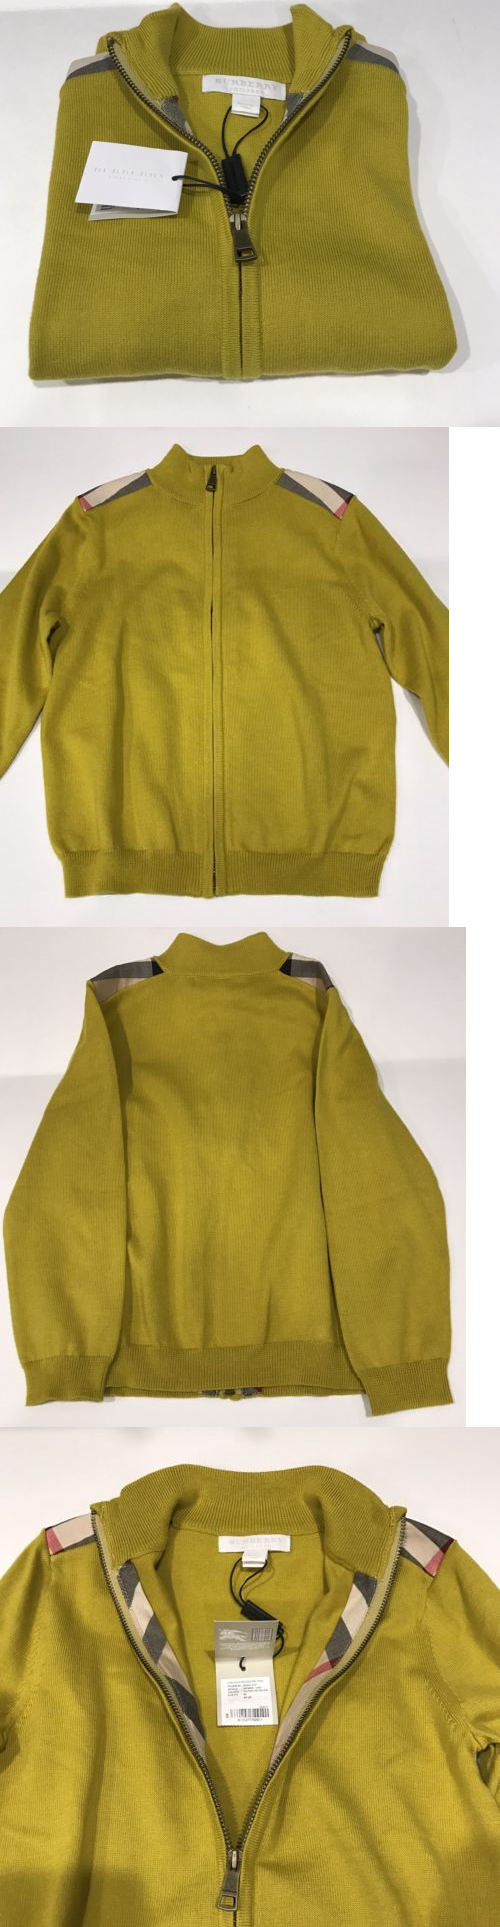 Sweaters 175657: Nwt Burberry Children Boys 4 Years Yellow Sweater ...